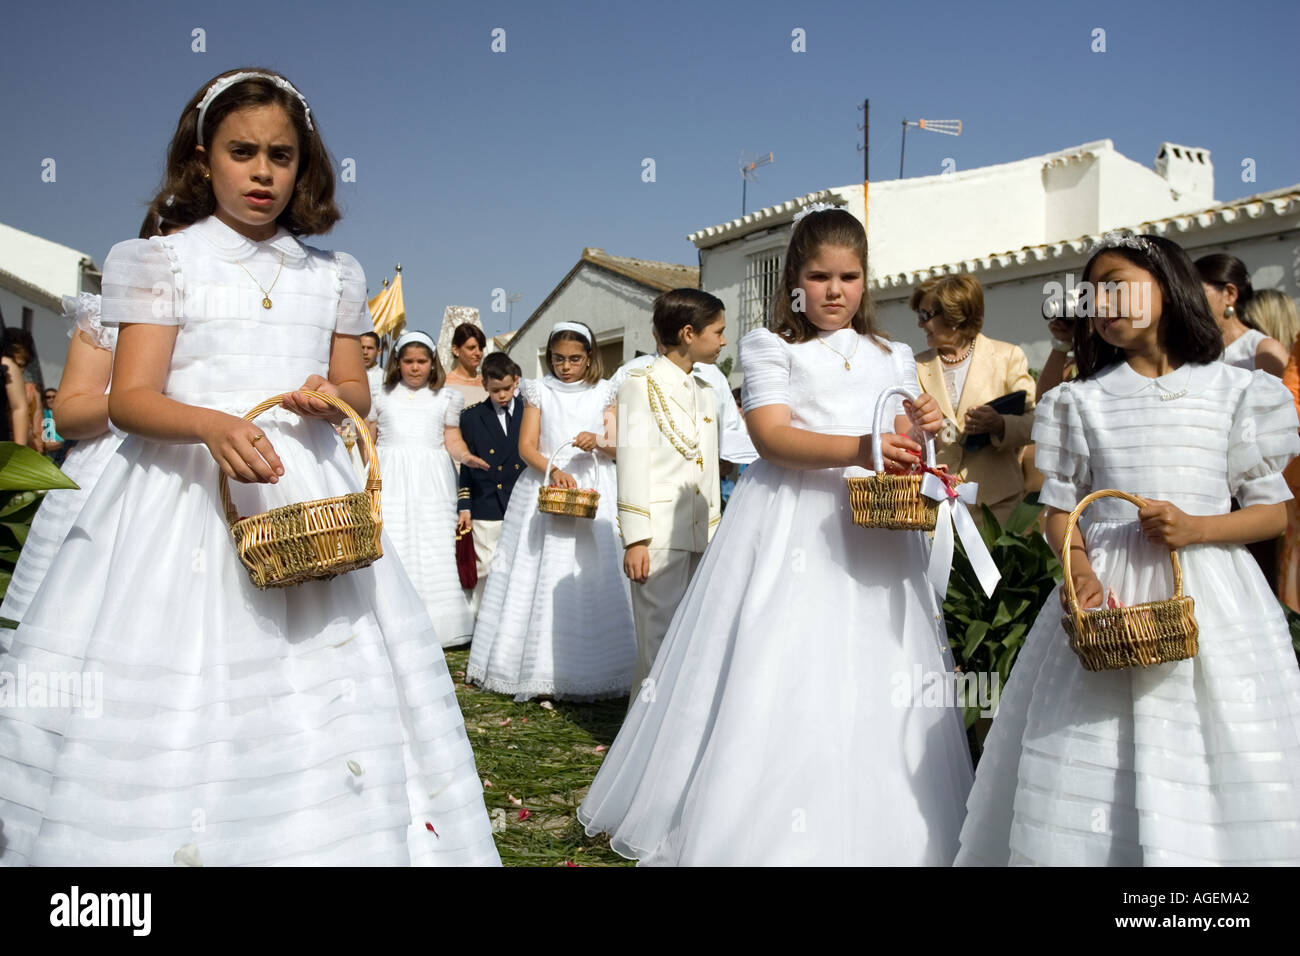 Children In First Communion Dresses Imágenes De Stock Children In